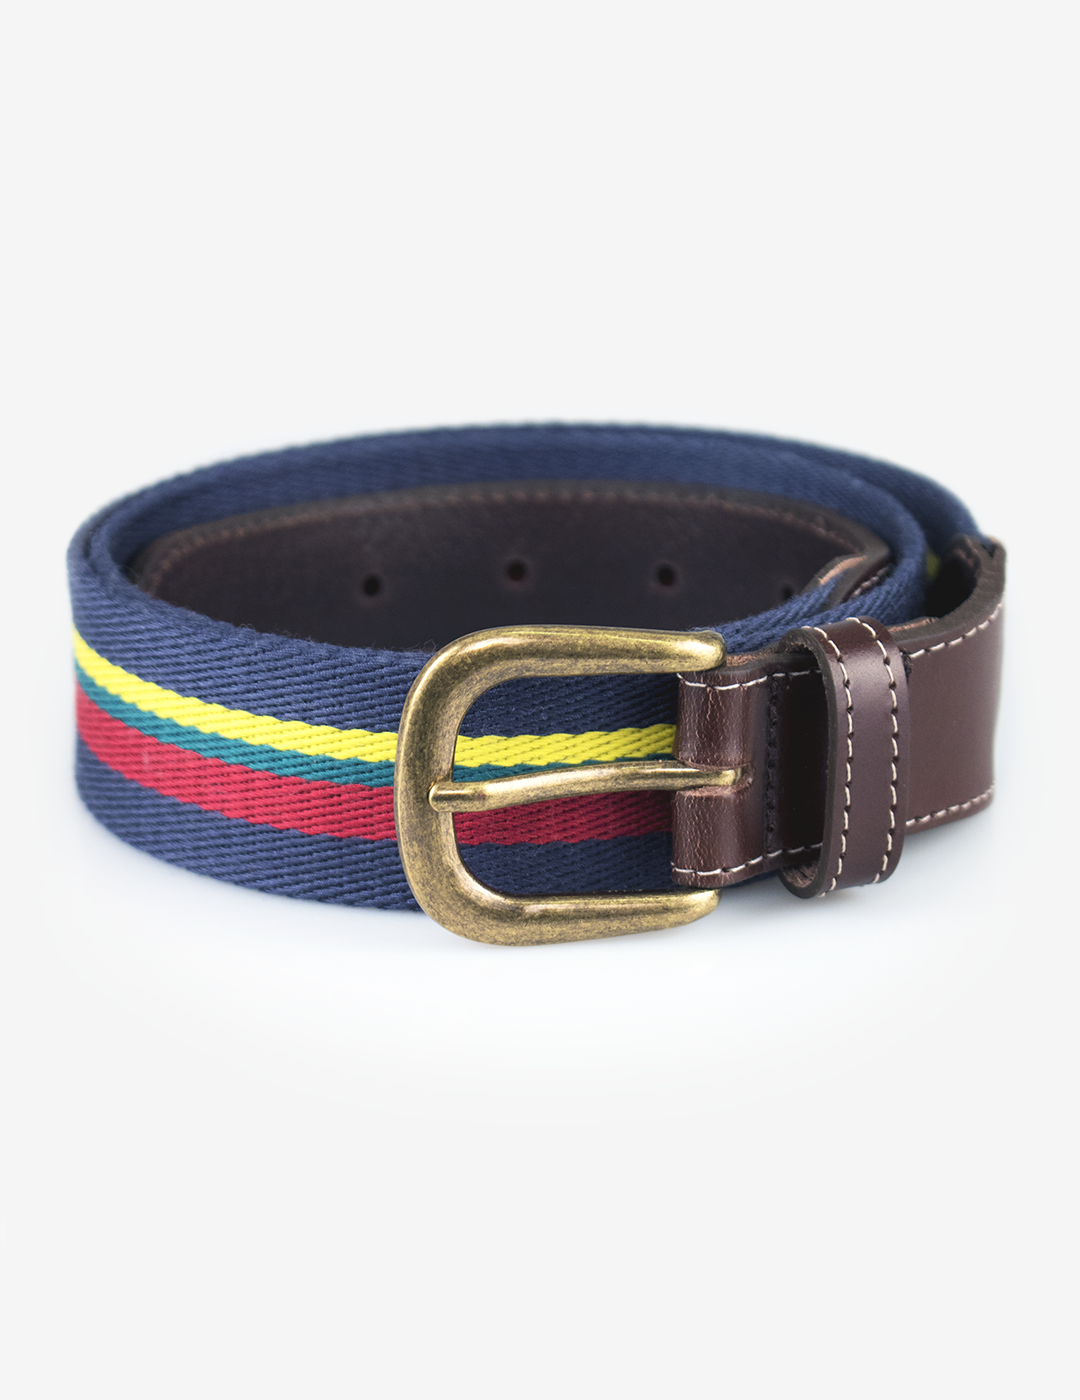 Royal Marines Corps Coloured Belt